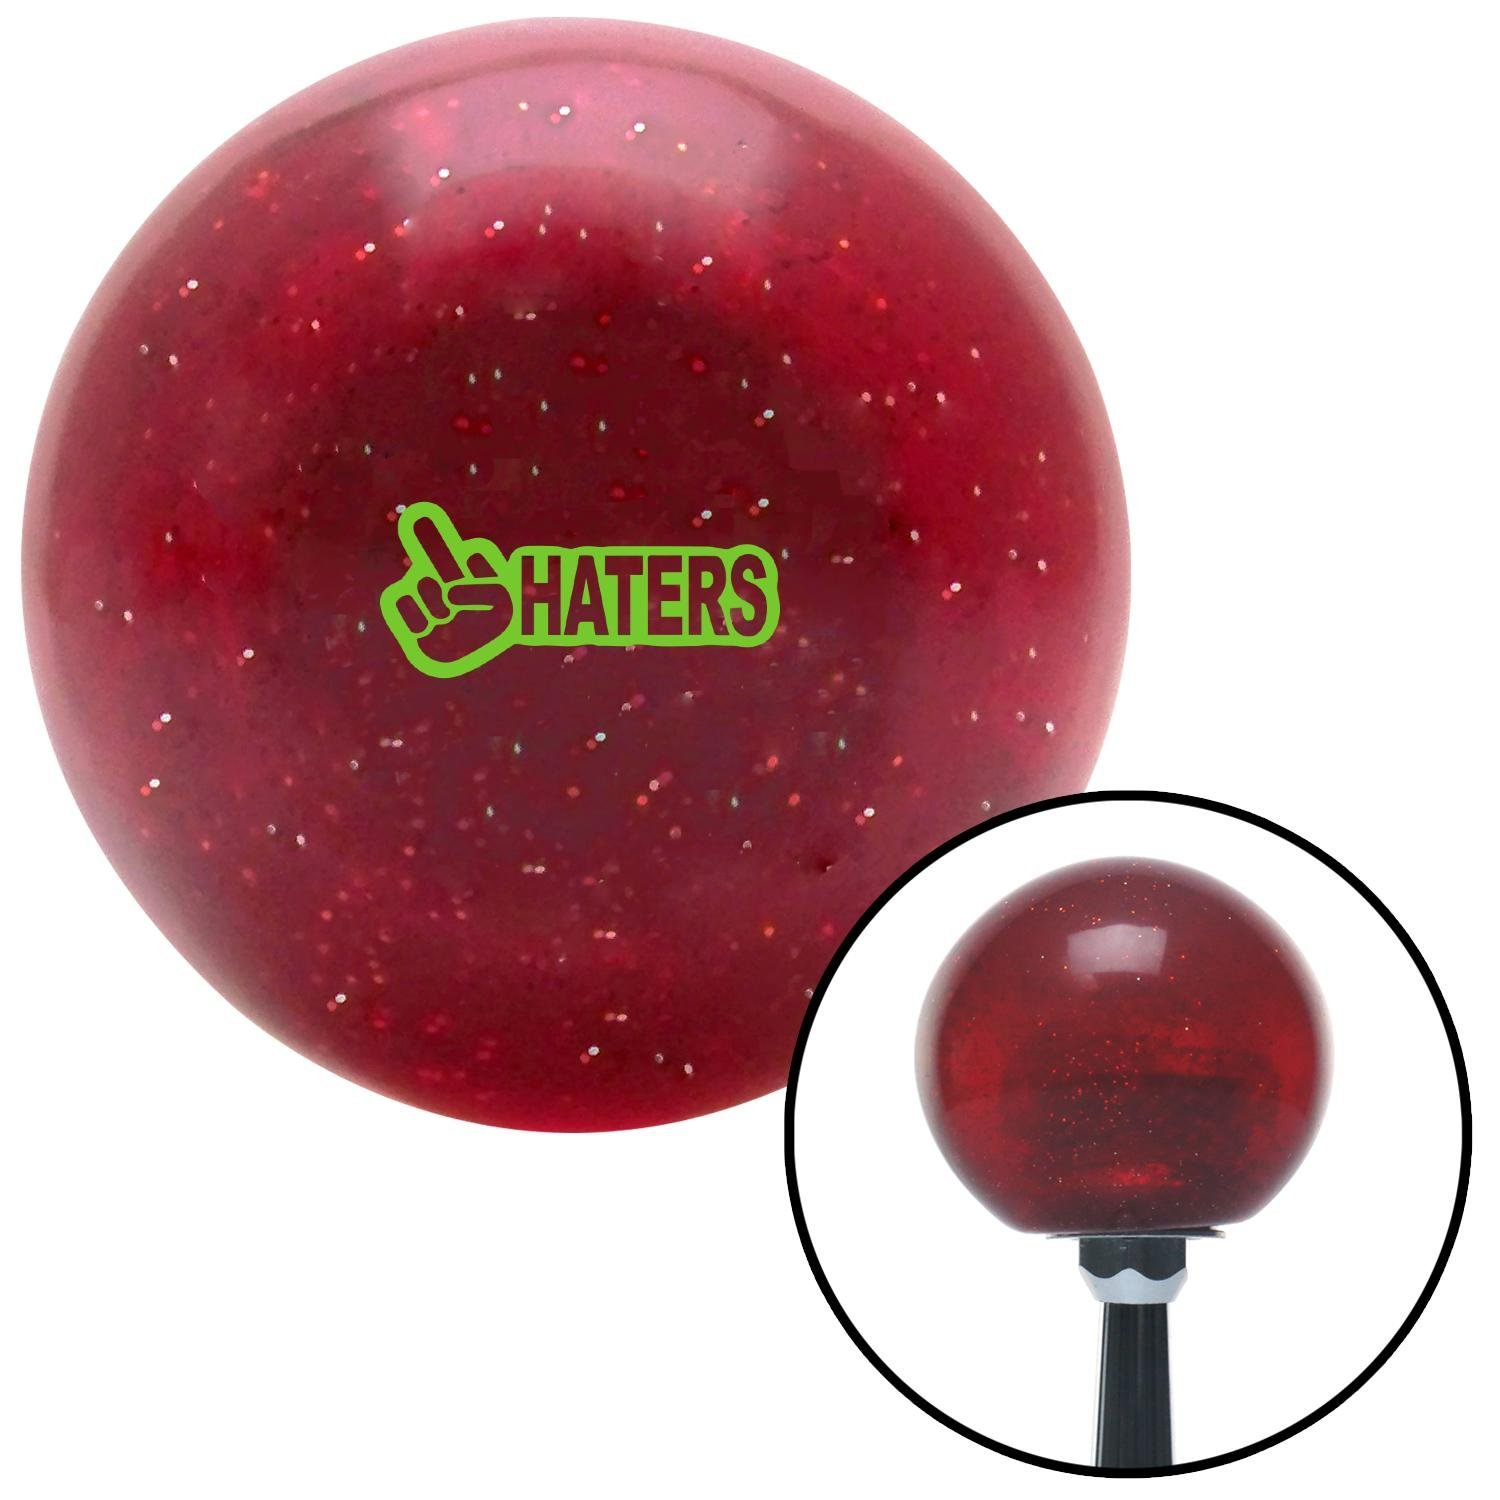 American Shifter 282984 Shift Knob Green Haters Red Metal Flake with M16 x 1.5 Insert